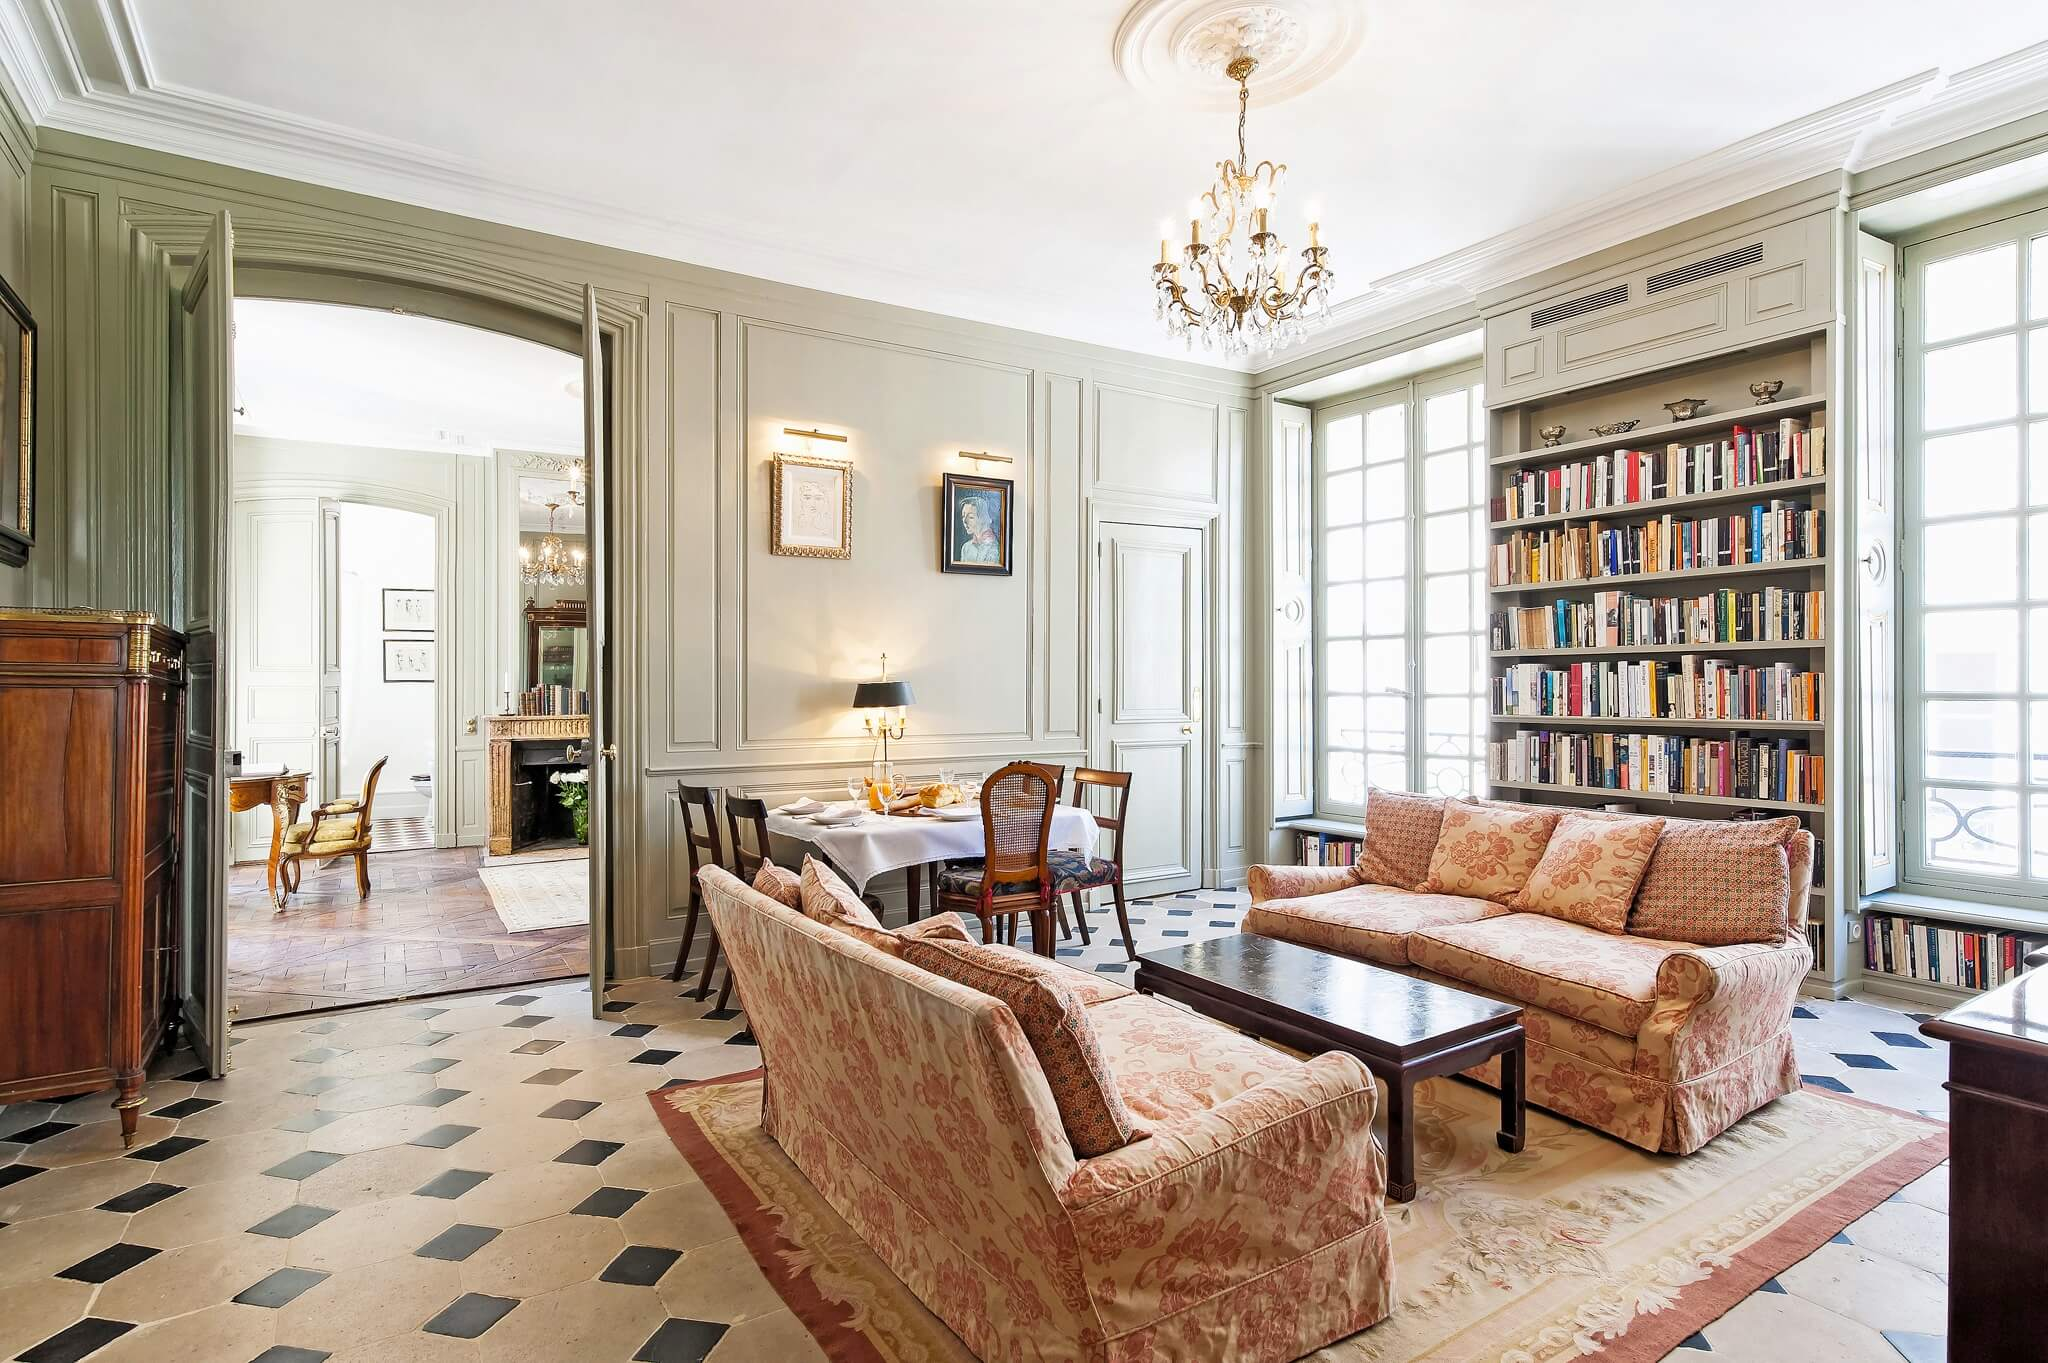 Paris Luxury Apartment Rental Luxembourg Gardens